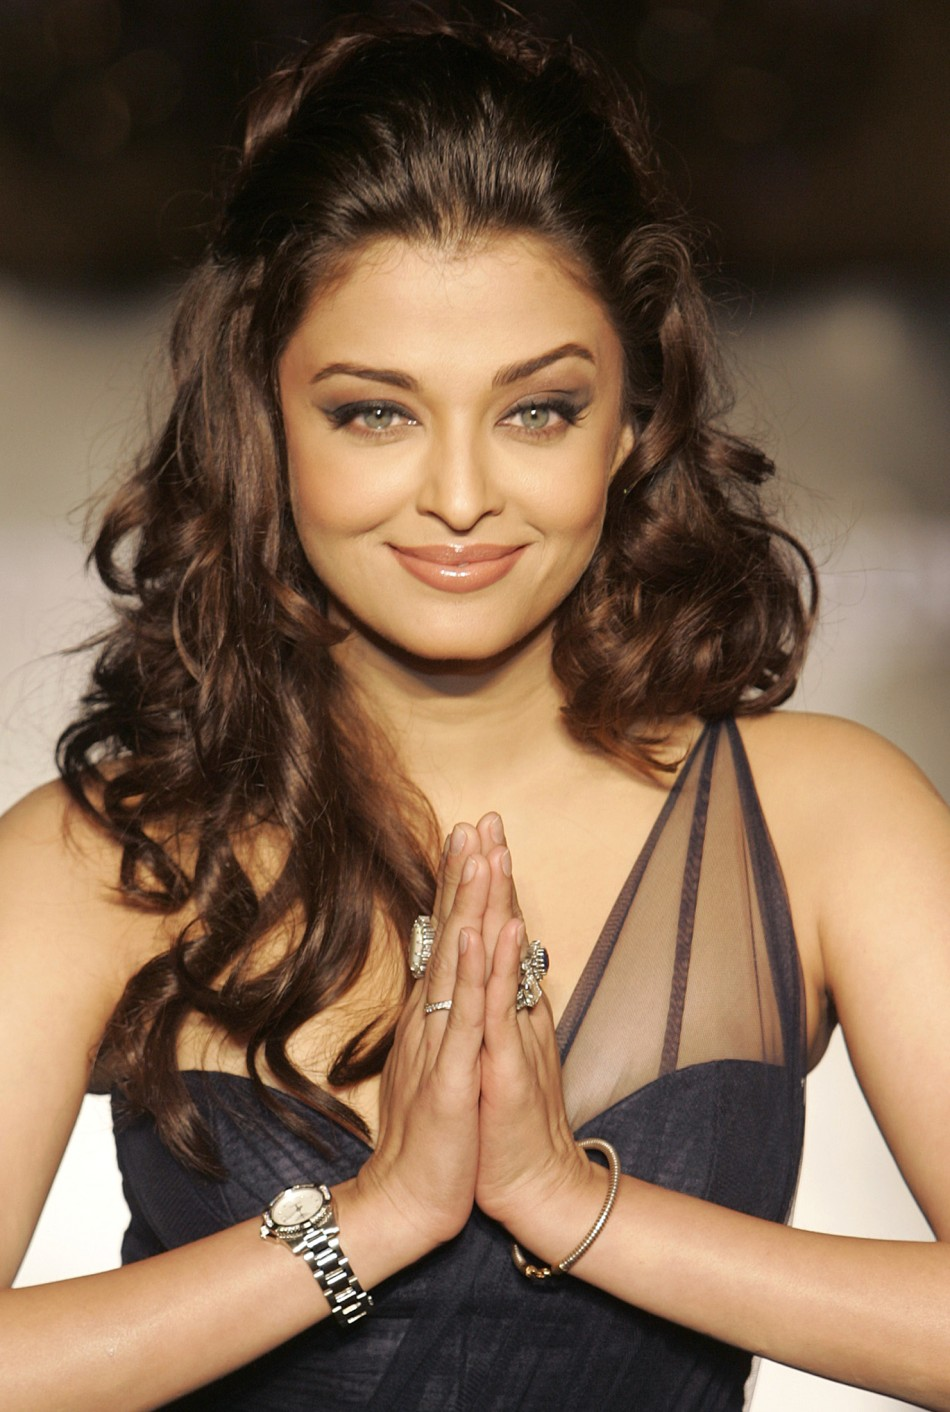 Bollywood actress Aishwarya gestures in Kolkata in 2008